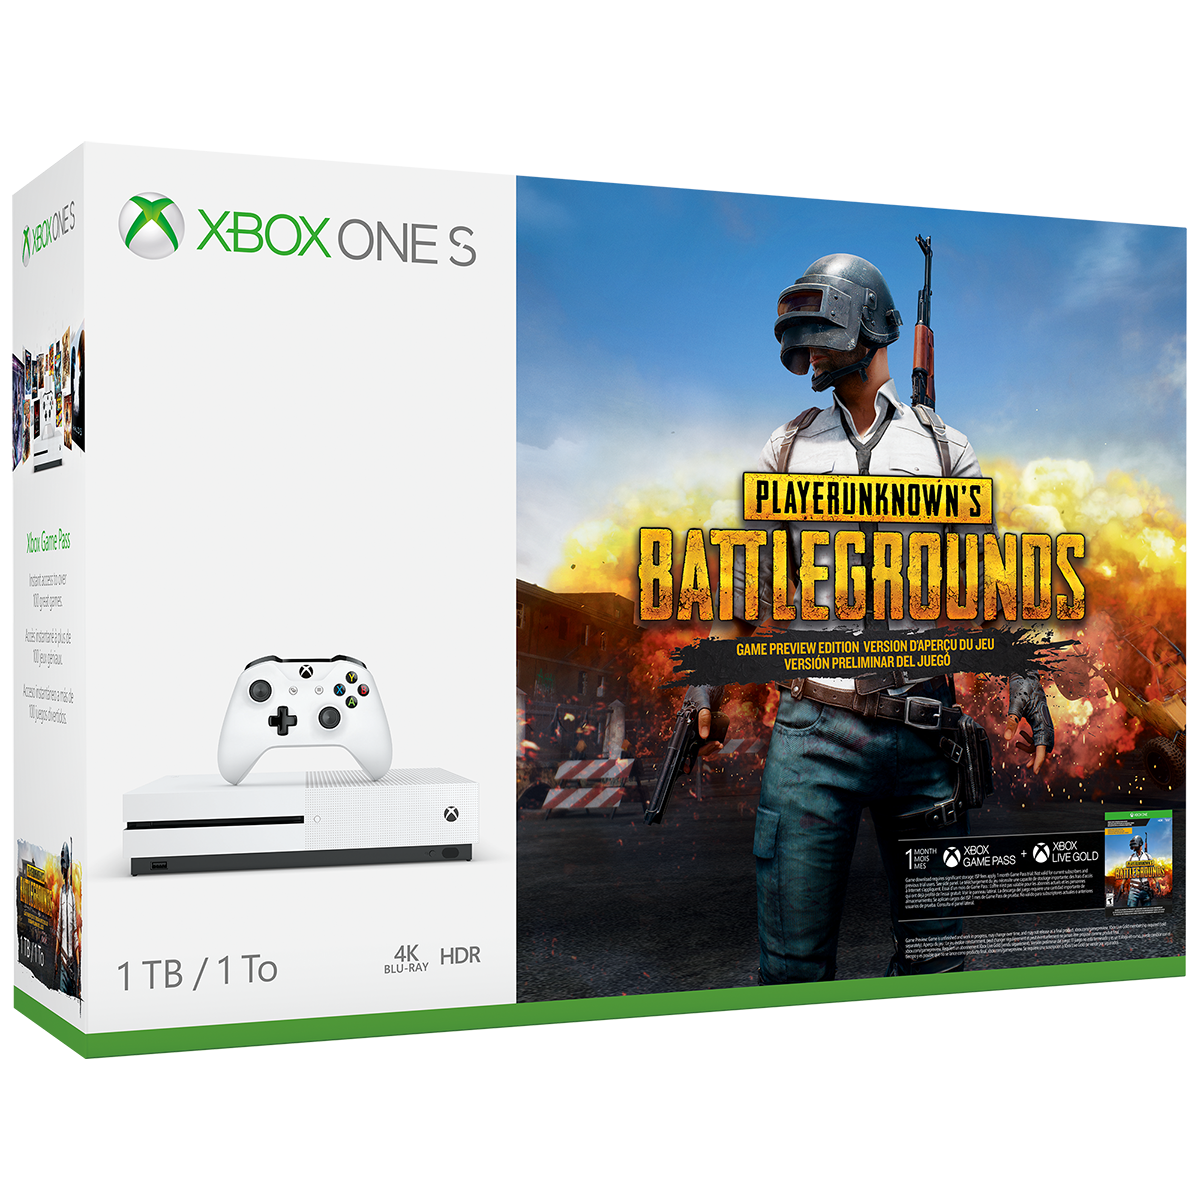 Microsoft Xbox One S 1TB PLAYERUNKNOWN'S BATTLEGROUNDS Bundle, White, 234-00301